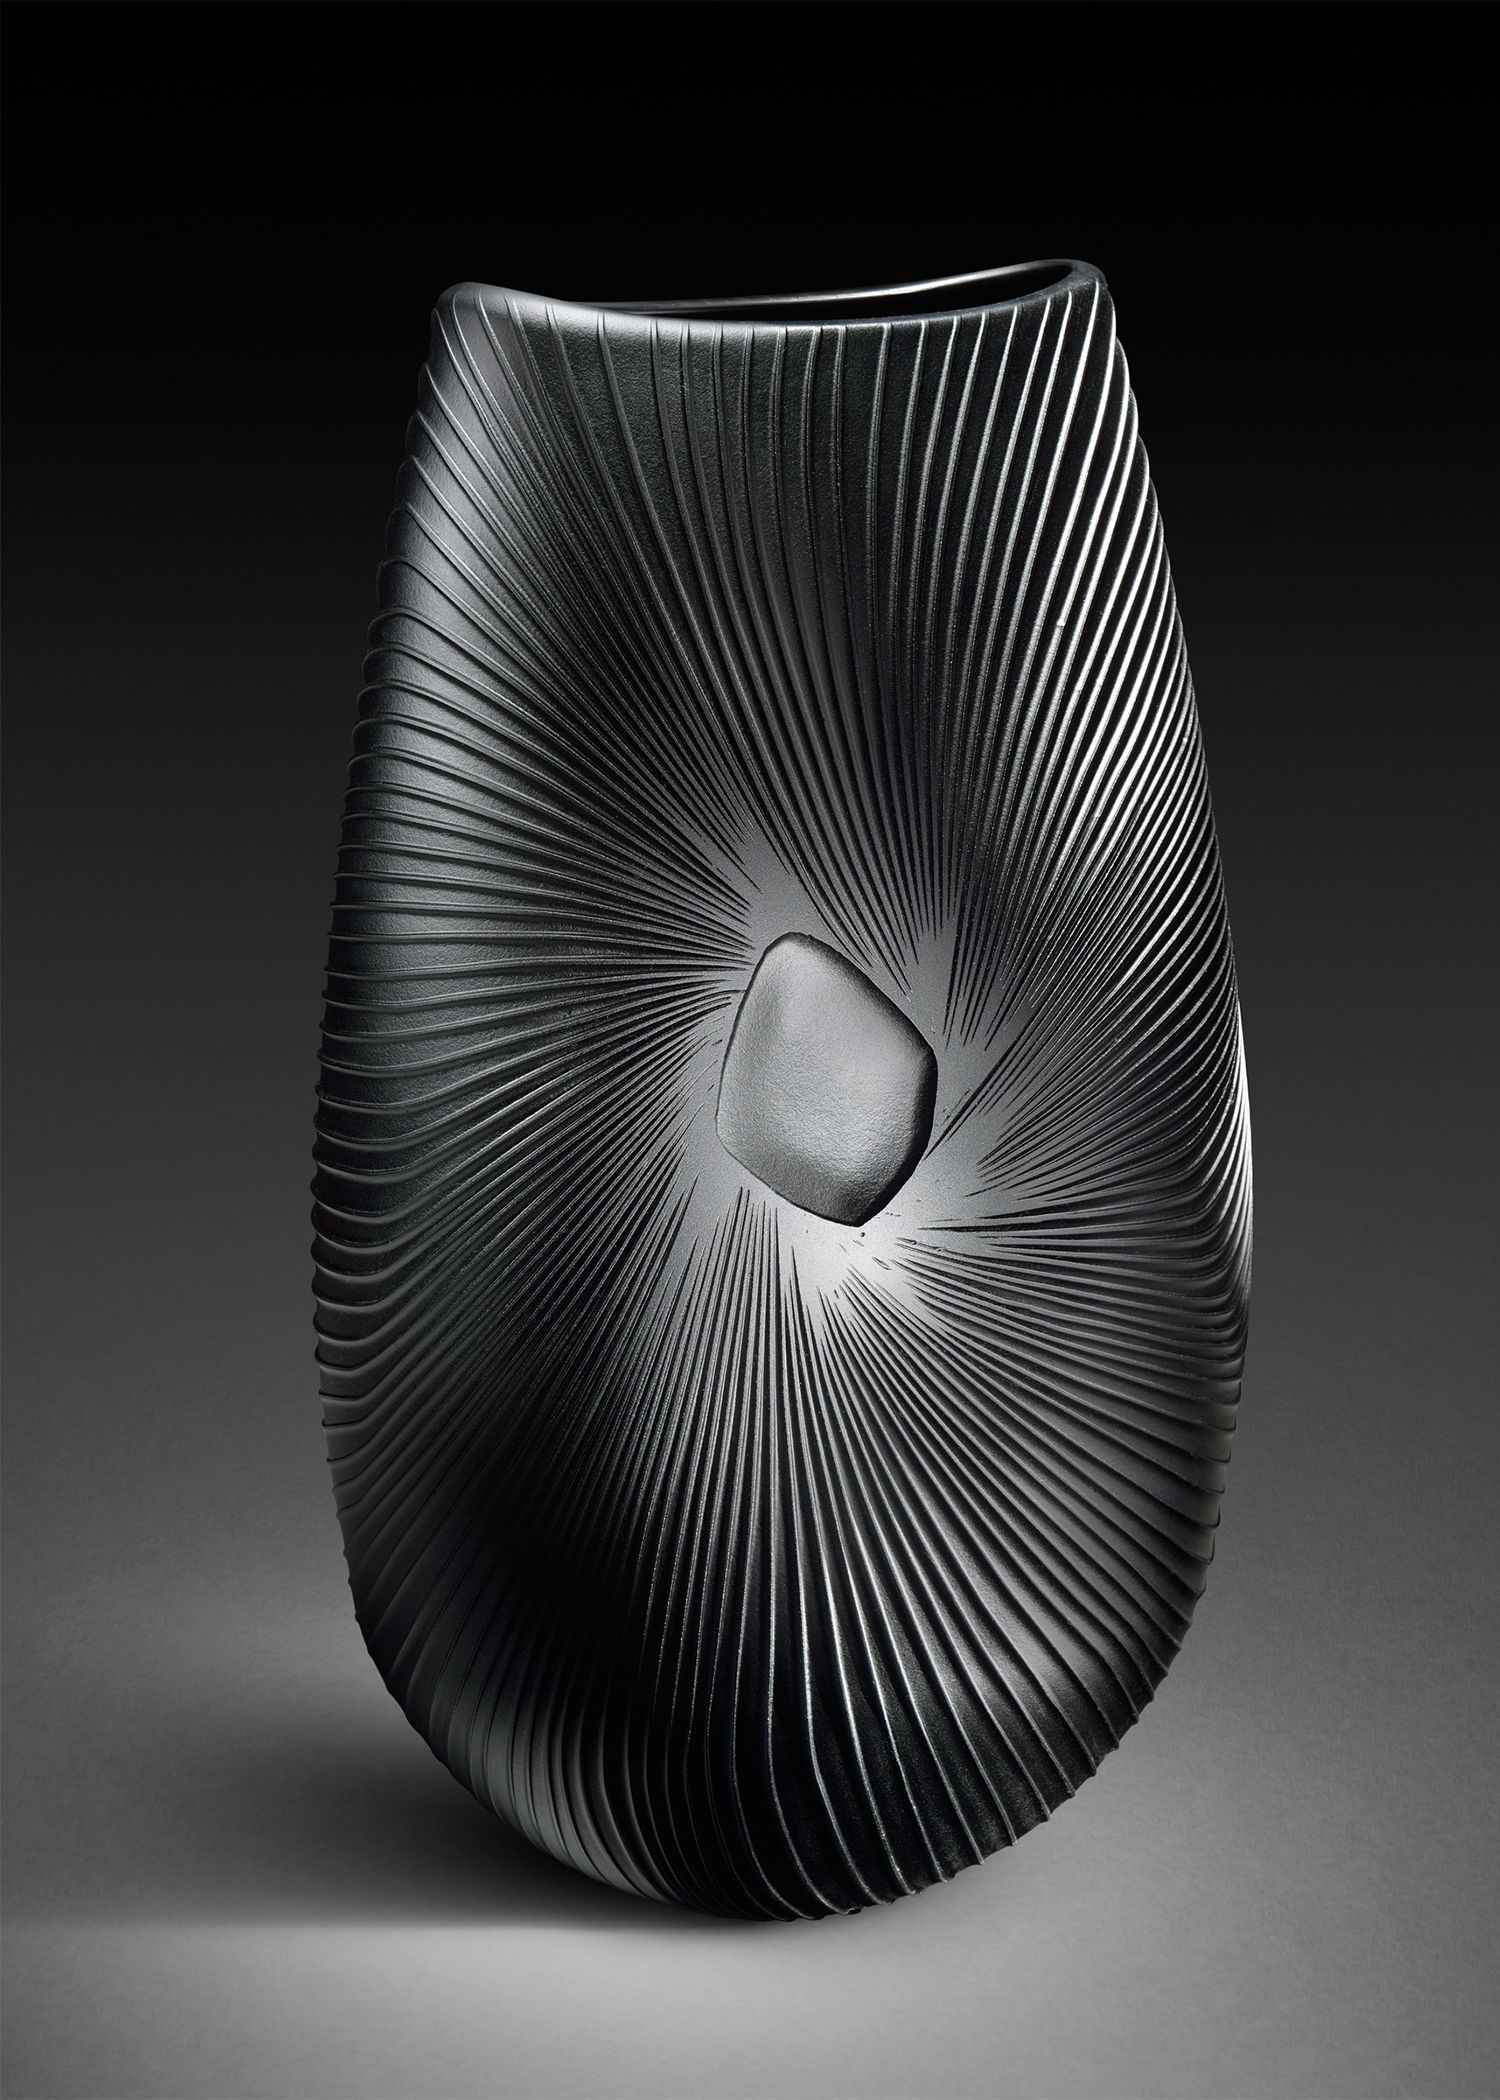 Armelle Bouchet O Neill Quot Obscura Quot Blown And Sand Carved Glass 2014 Live Auction Glass